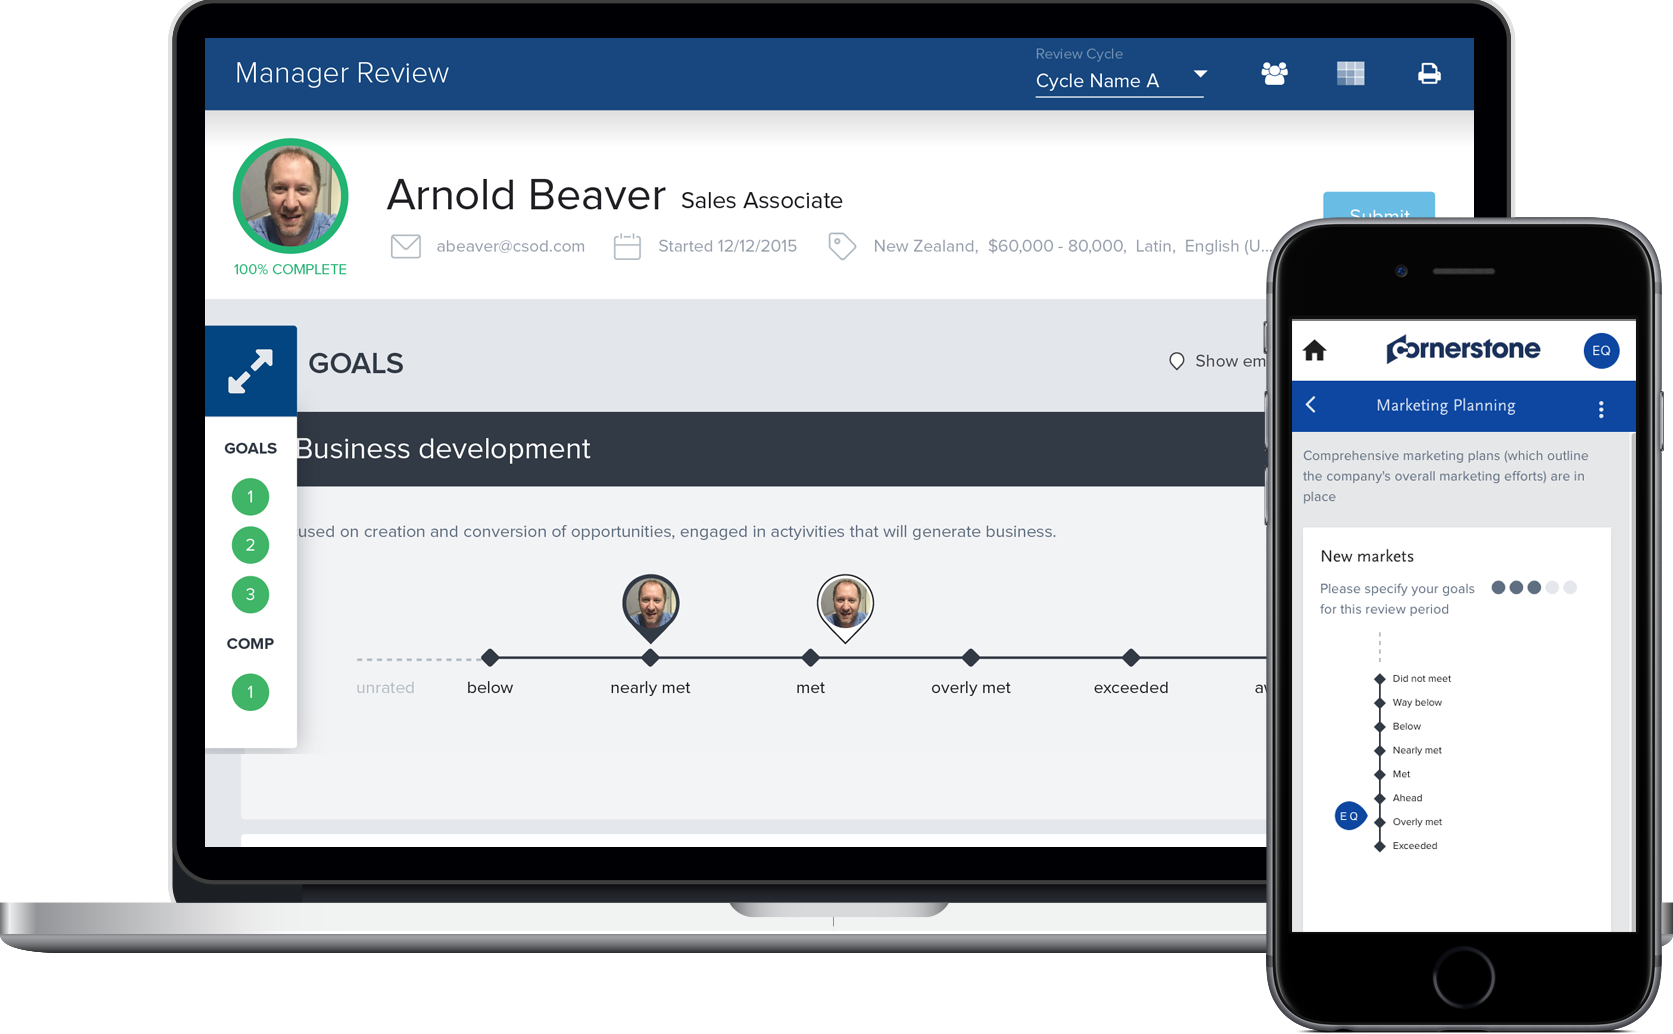 Cornerstone Growth Edition allows managers to create, track and manage goals for individual employees and teams.